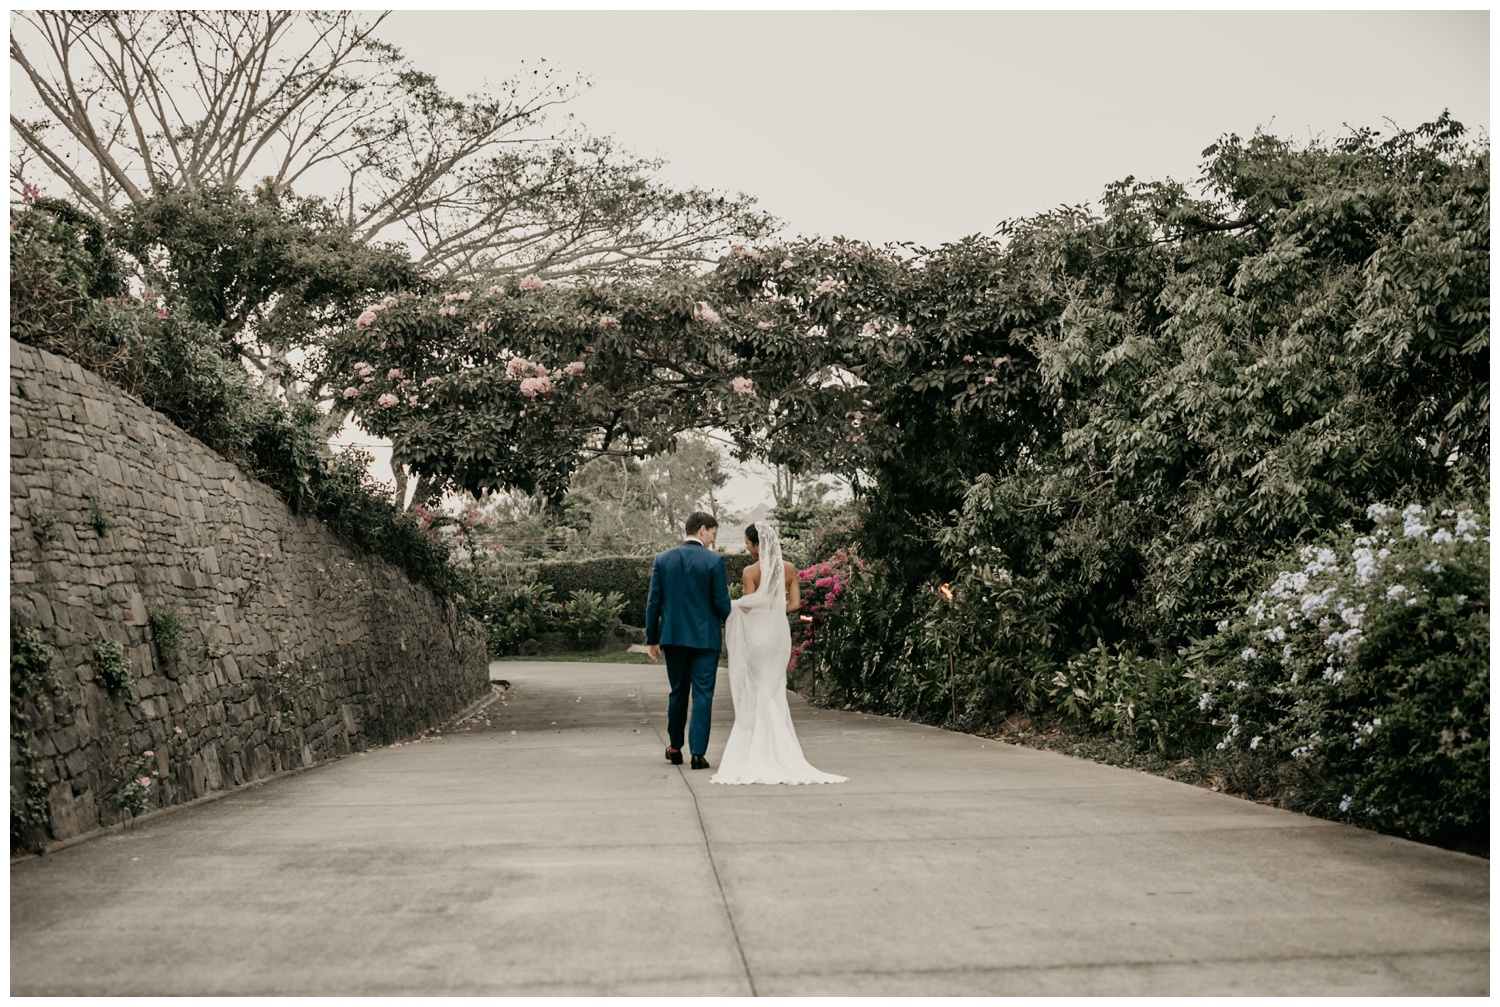 adriana_rivera_miranda_weddings_el_salvador_35.jpg